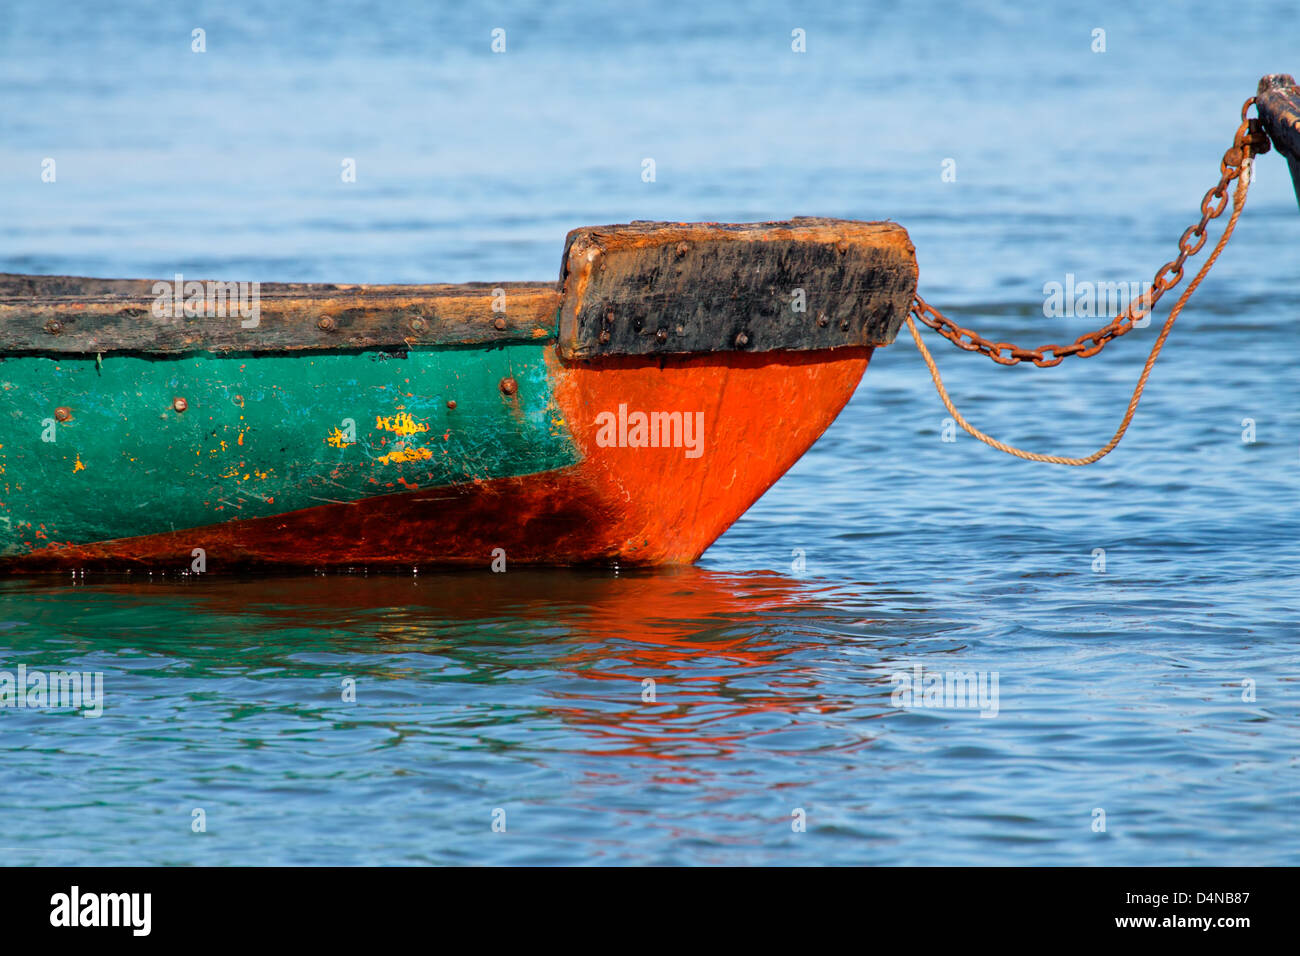 Anchored wooden fishing boat with reflection in water - Stock Image